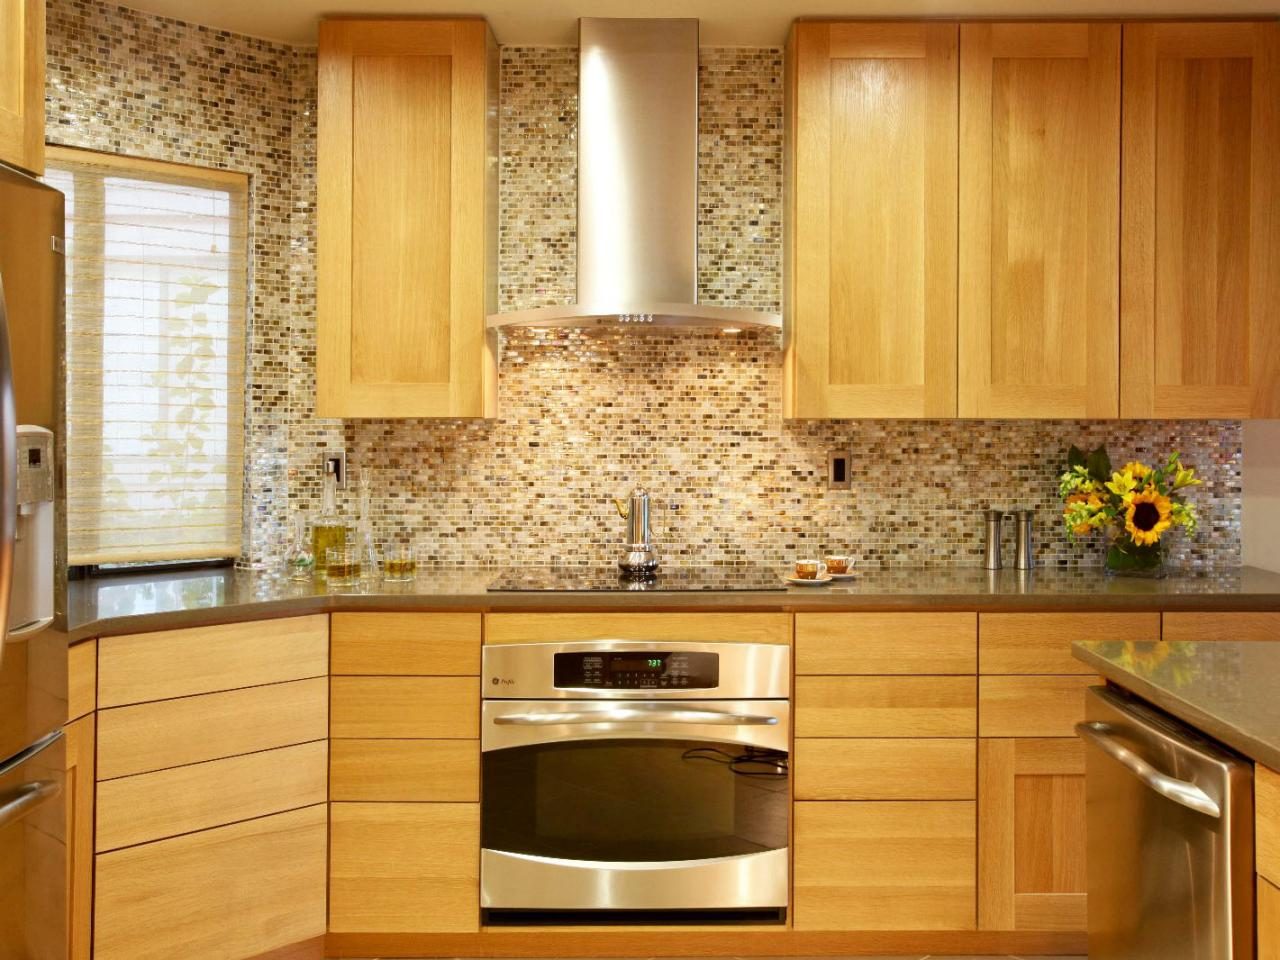 Kitchen Backsplash Designs Adorable Glass Tile Backsplash Ideas Pictures & Tips From Hgtv  Hgtv Decorating Design